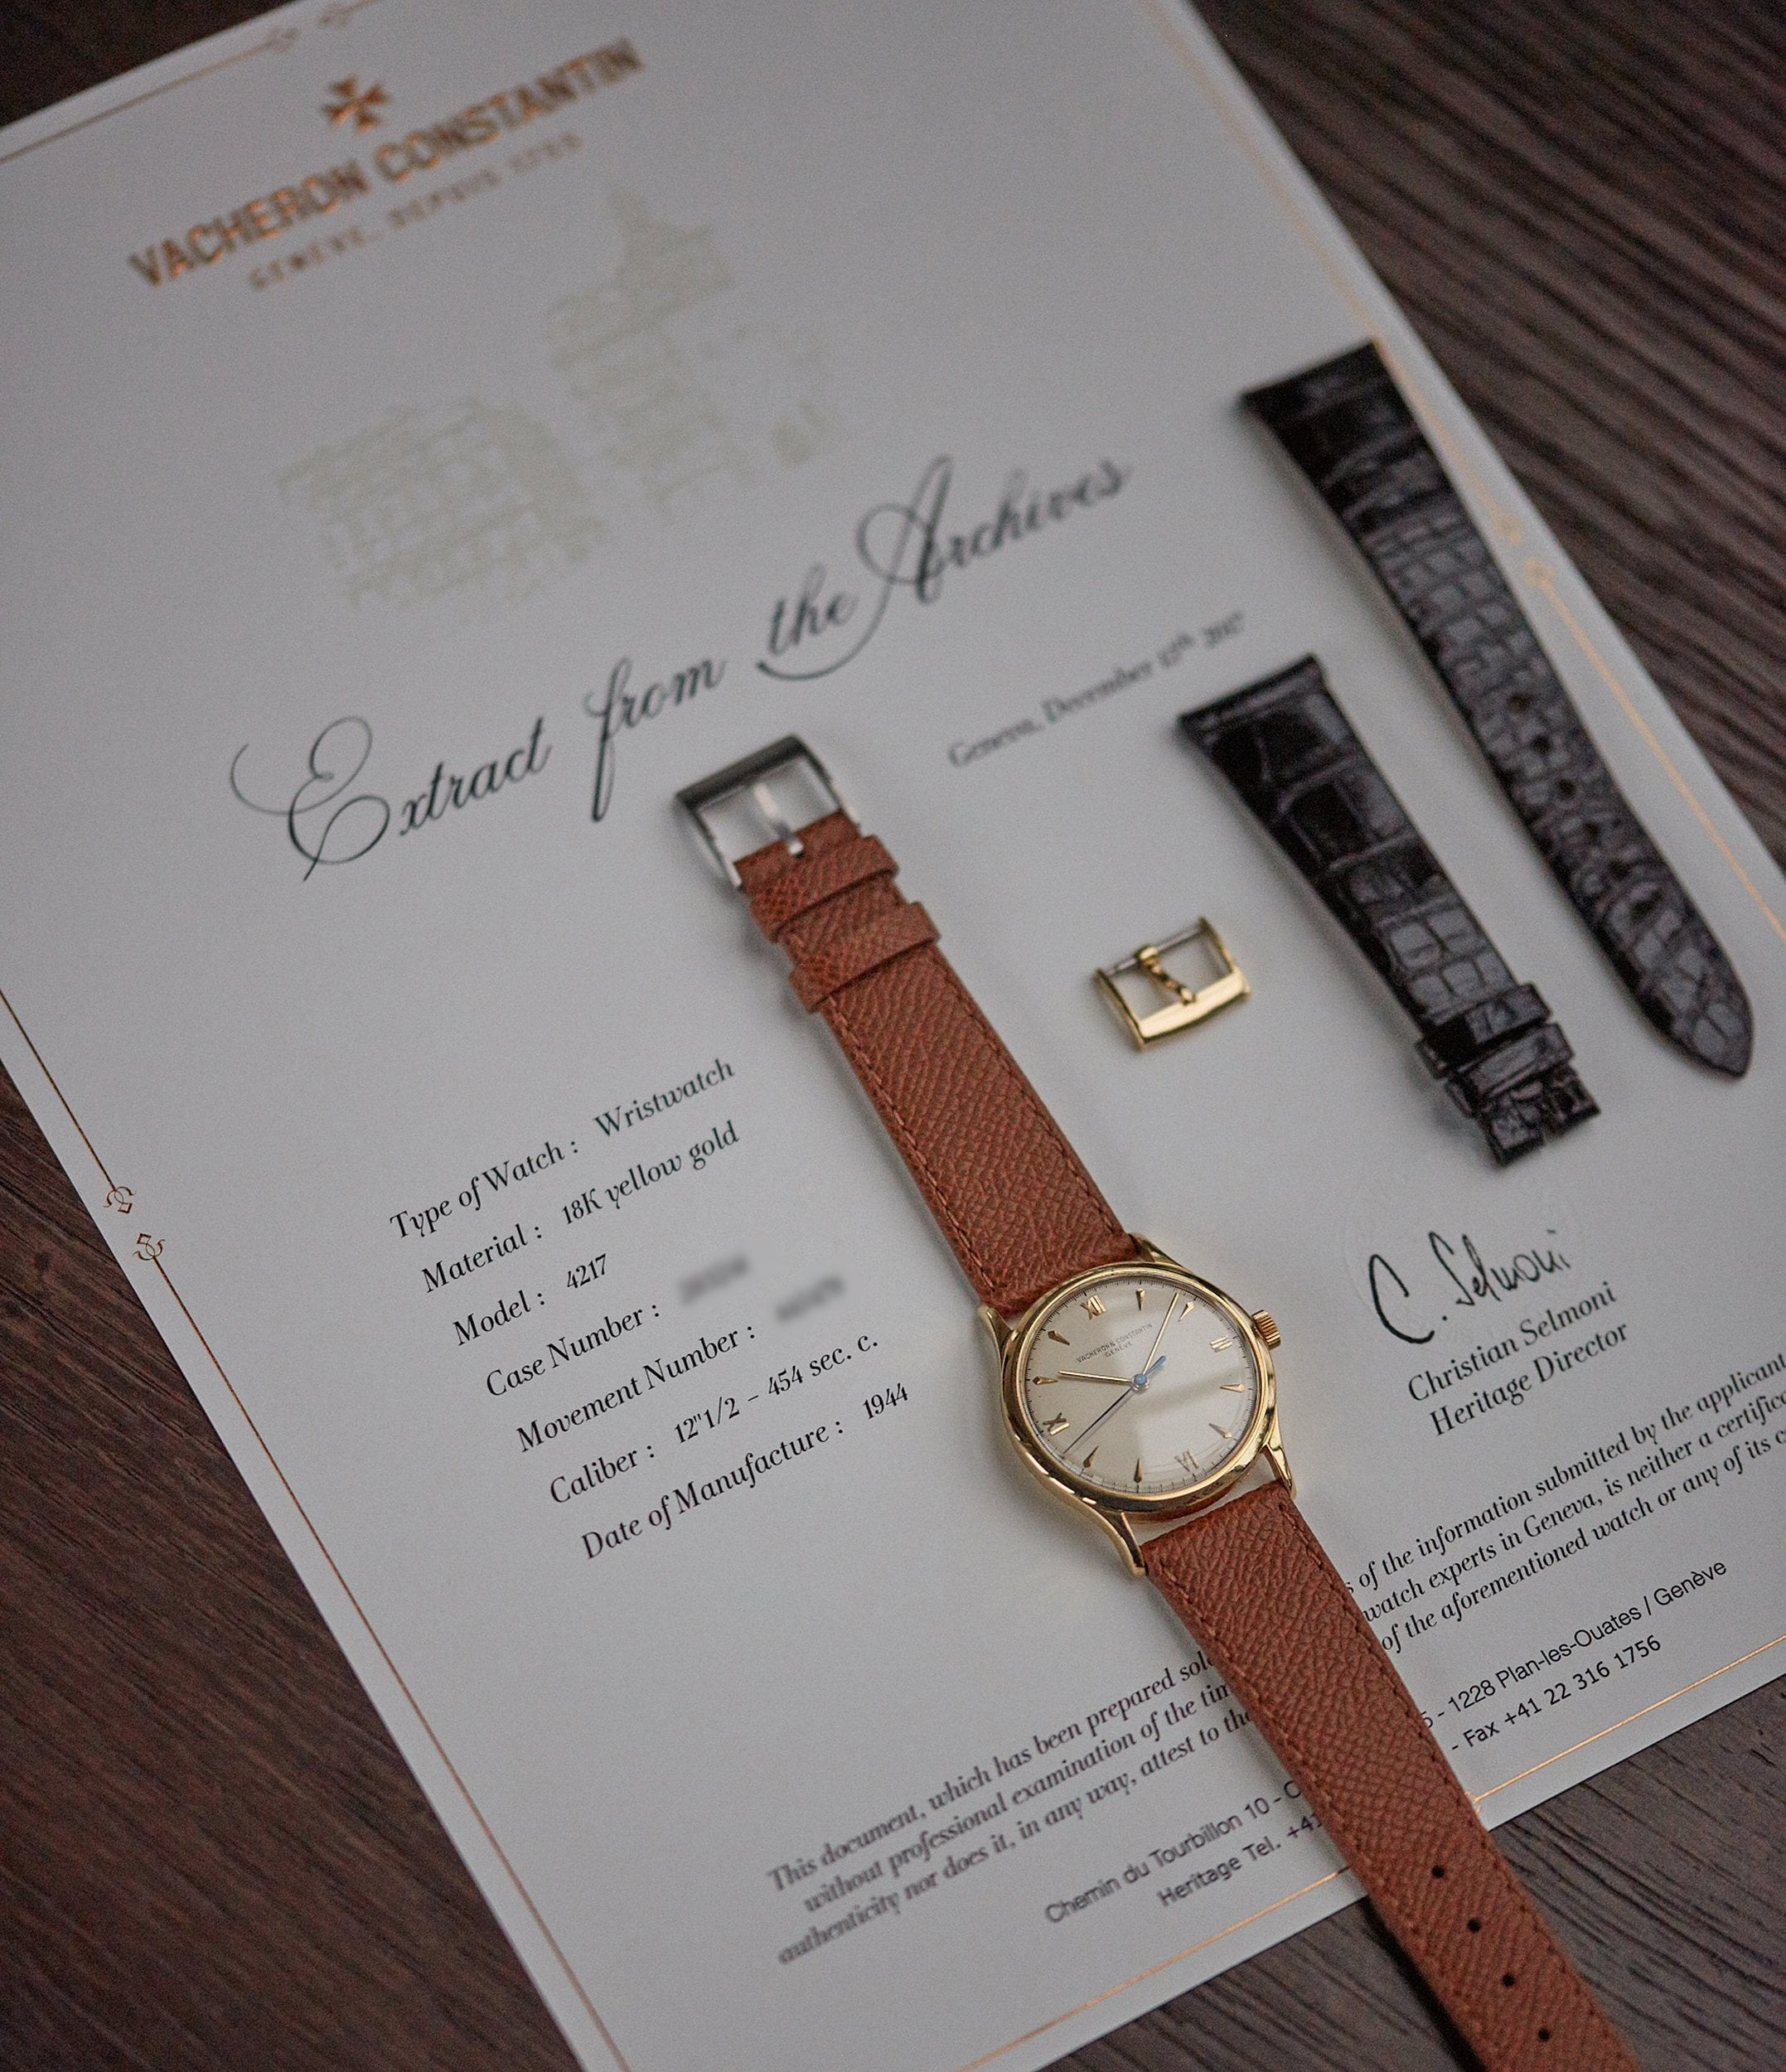 Vacheron Constantin Archive Extract Ref. 4127 vintage time-only yellow gold dress watch for sale online A Collected Man London UK specialist rare watches